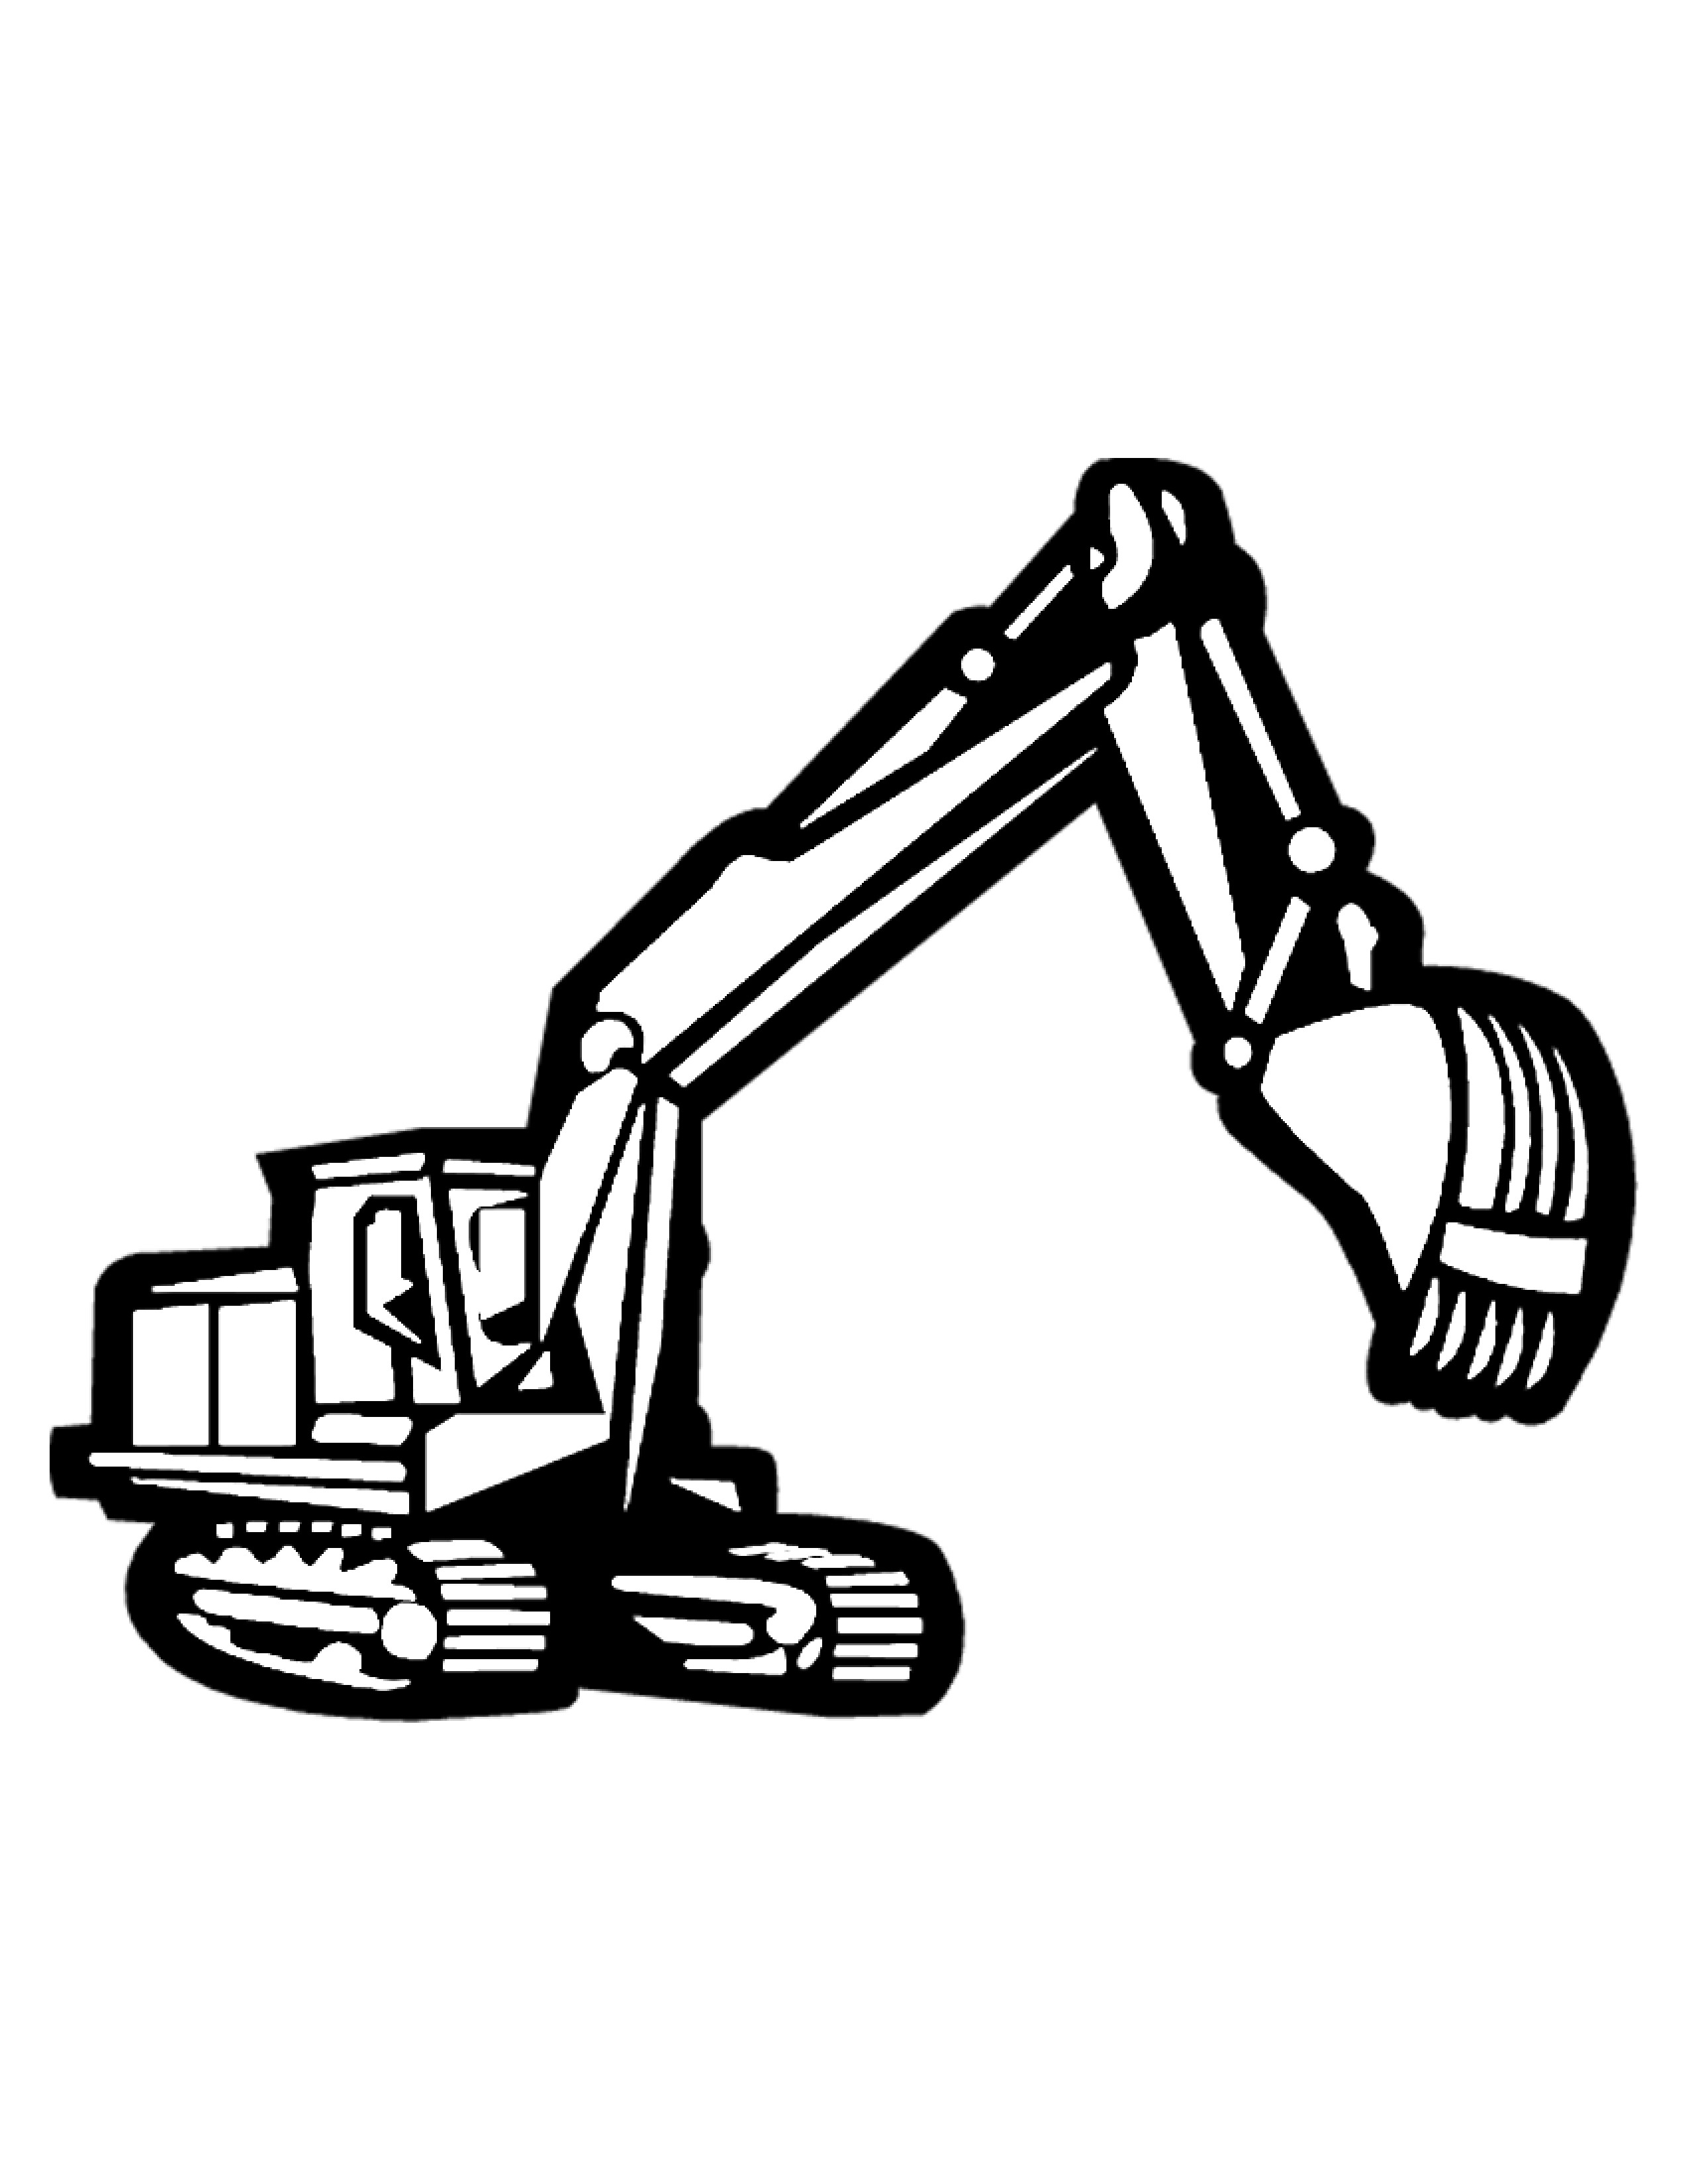 2550x3300 Mechanical Crane Clip Art Black And White Cliparts